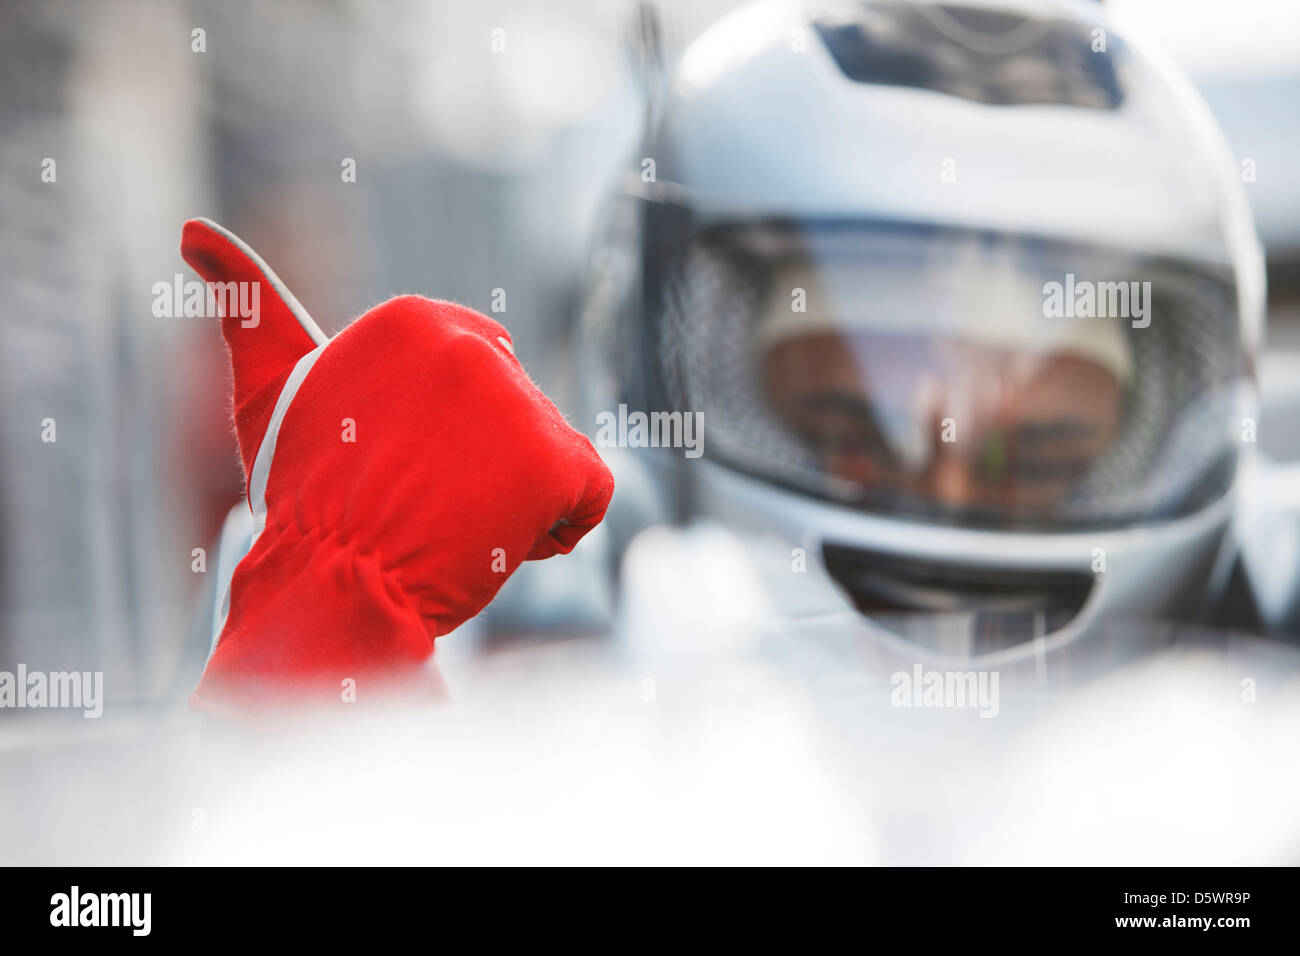 Racer giving thumbs up in car - Stock Image